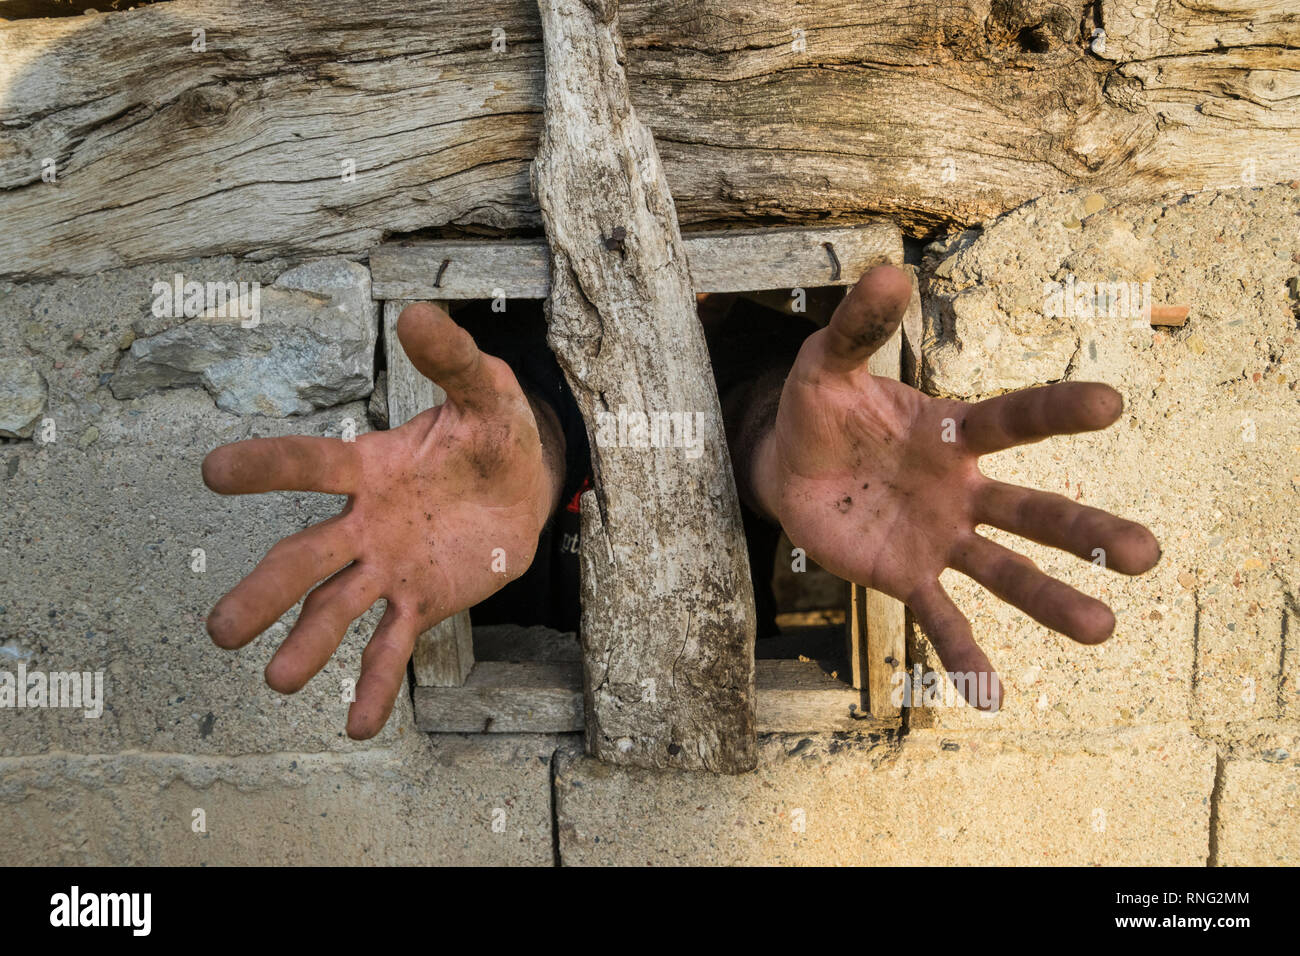 Hands reaching out of a small window from a mud and stone made house in the Balkan Mountains region of Eastern Serbia. - Stock Image